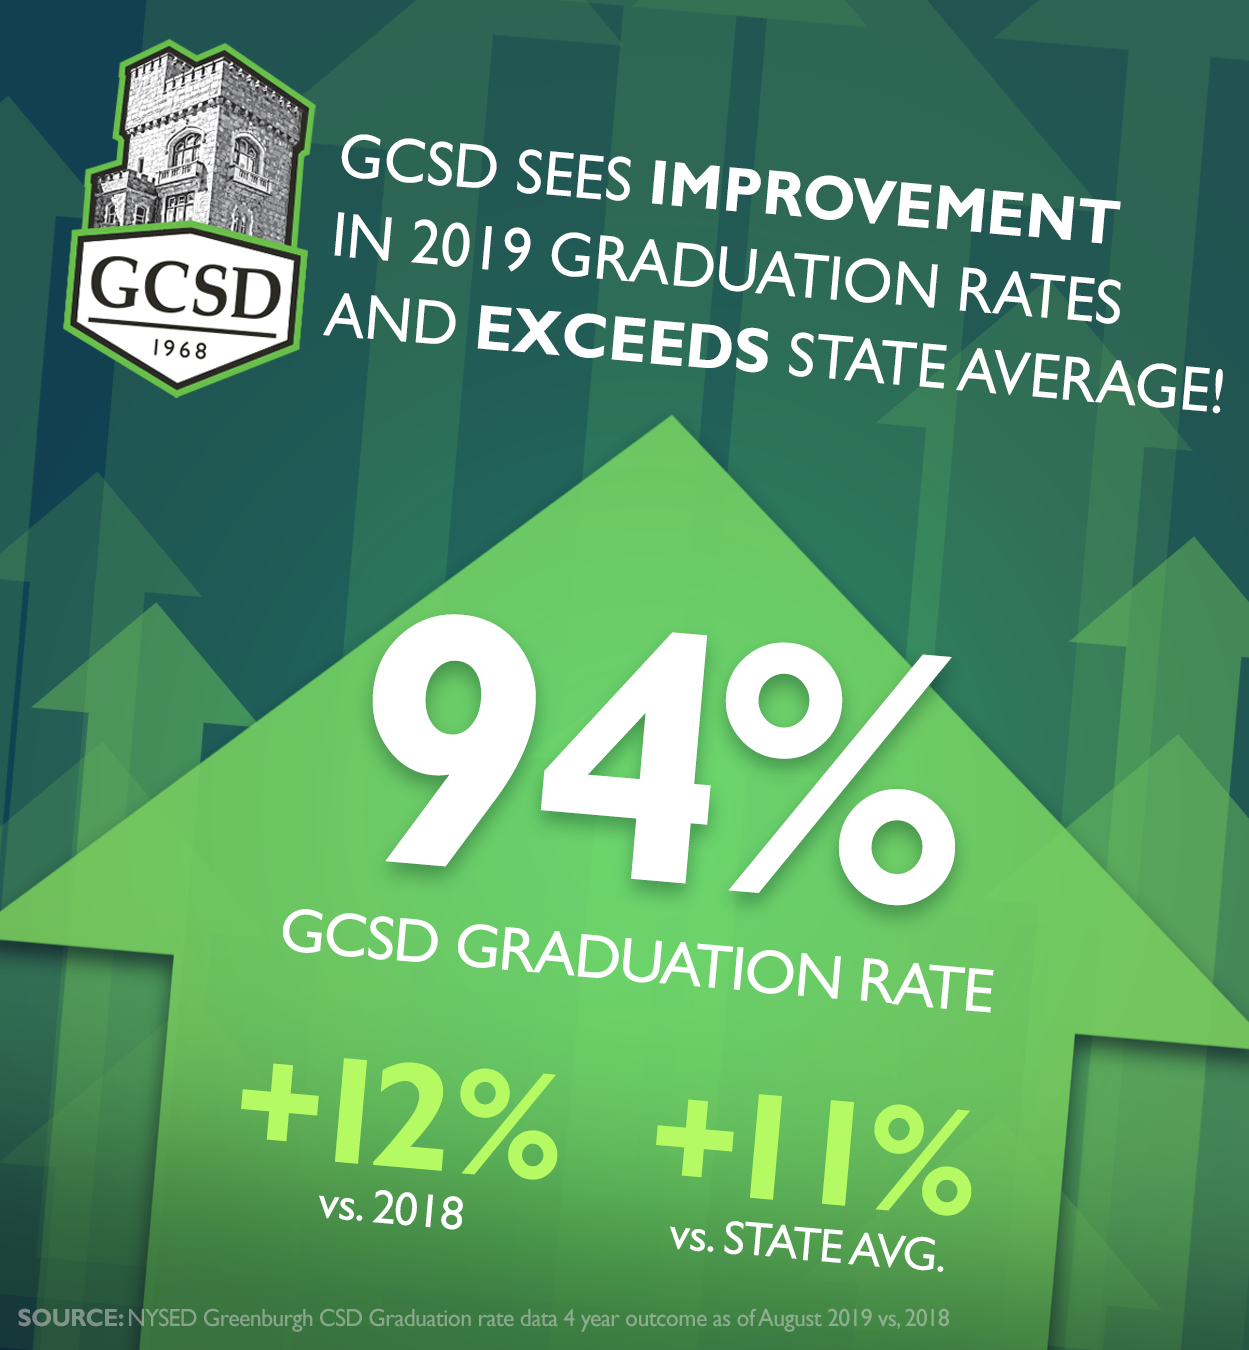 GCSD sees improvement in 2019 graduation rate and exceeds state average